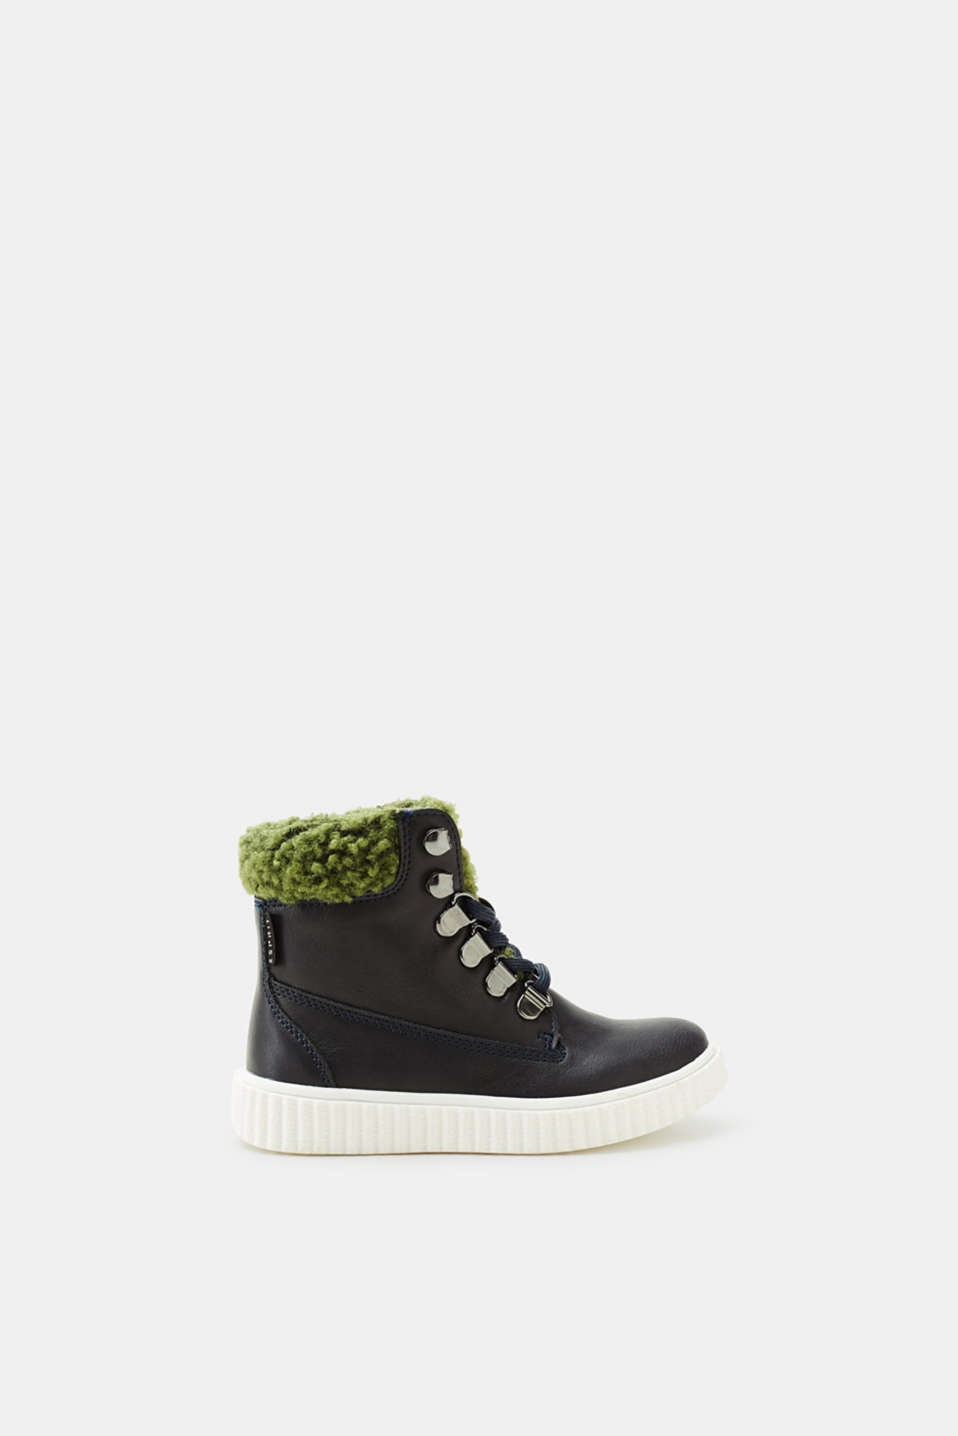 Esprit - Lace-up boots in imitation leather with teddy fur